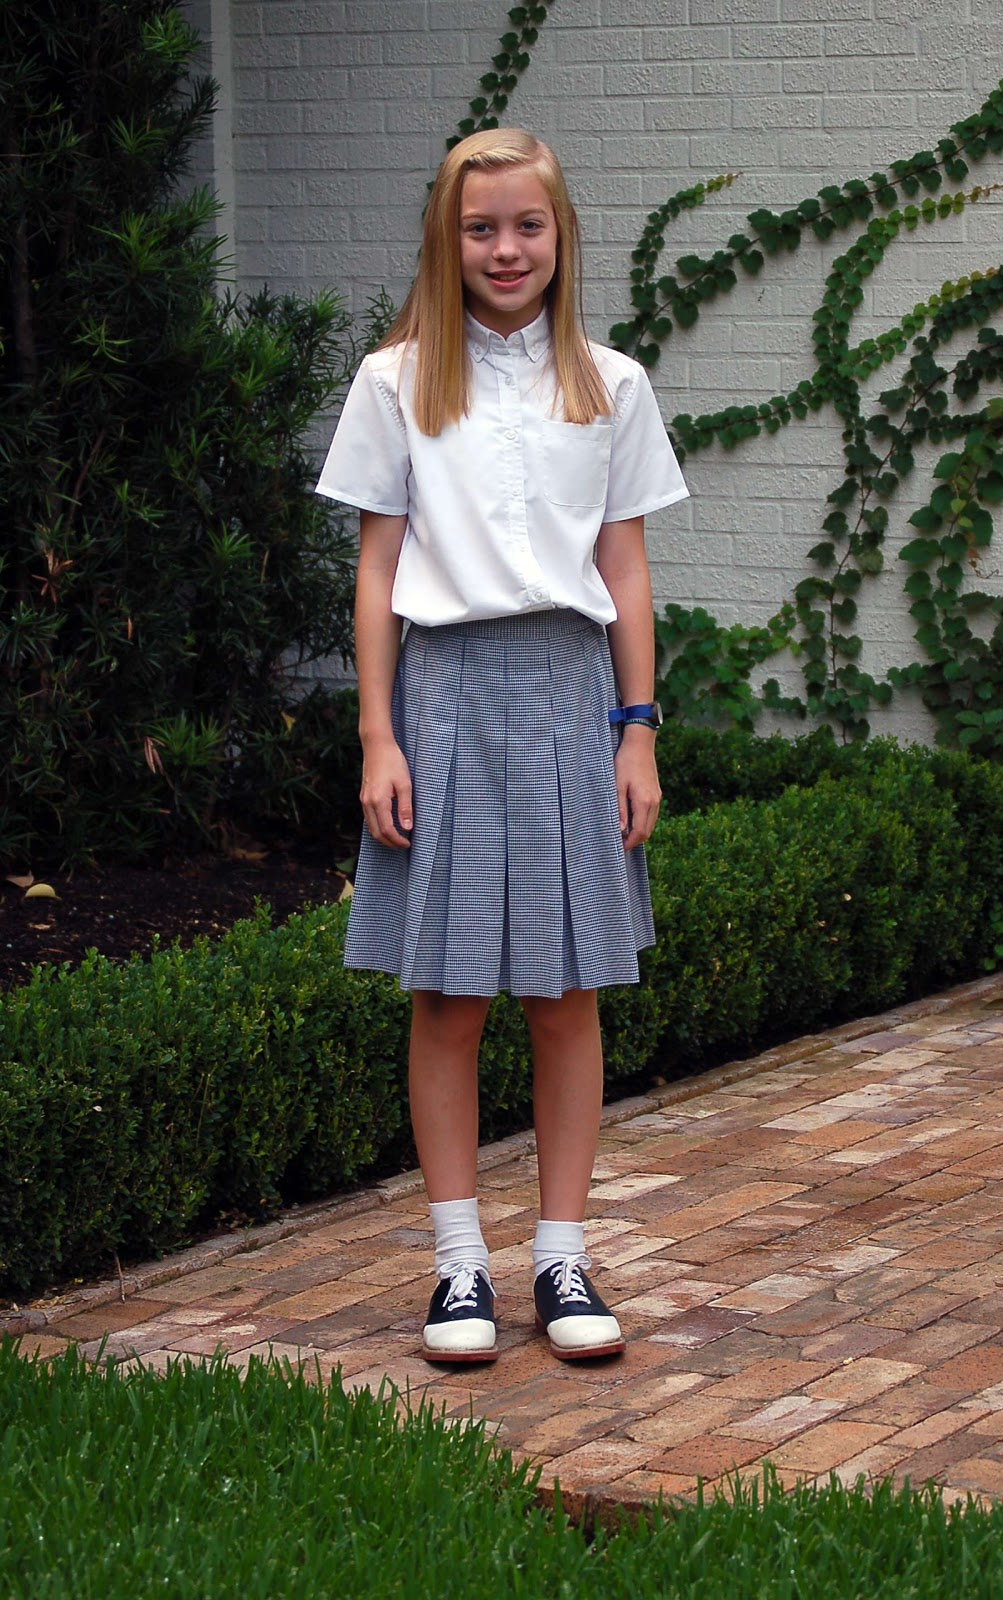 Sixth Grade Dance Dresses Pretty For The 6th Grade Dance